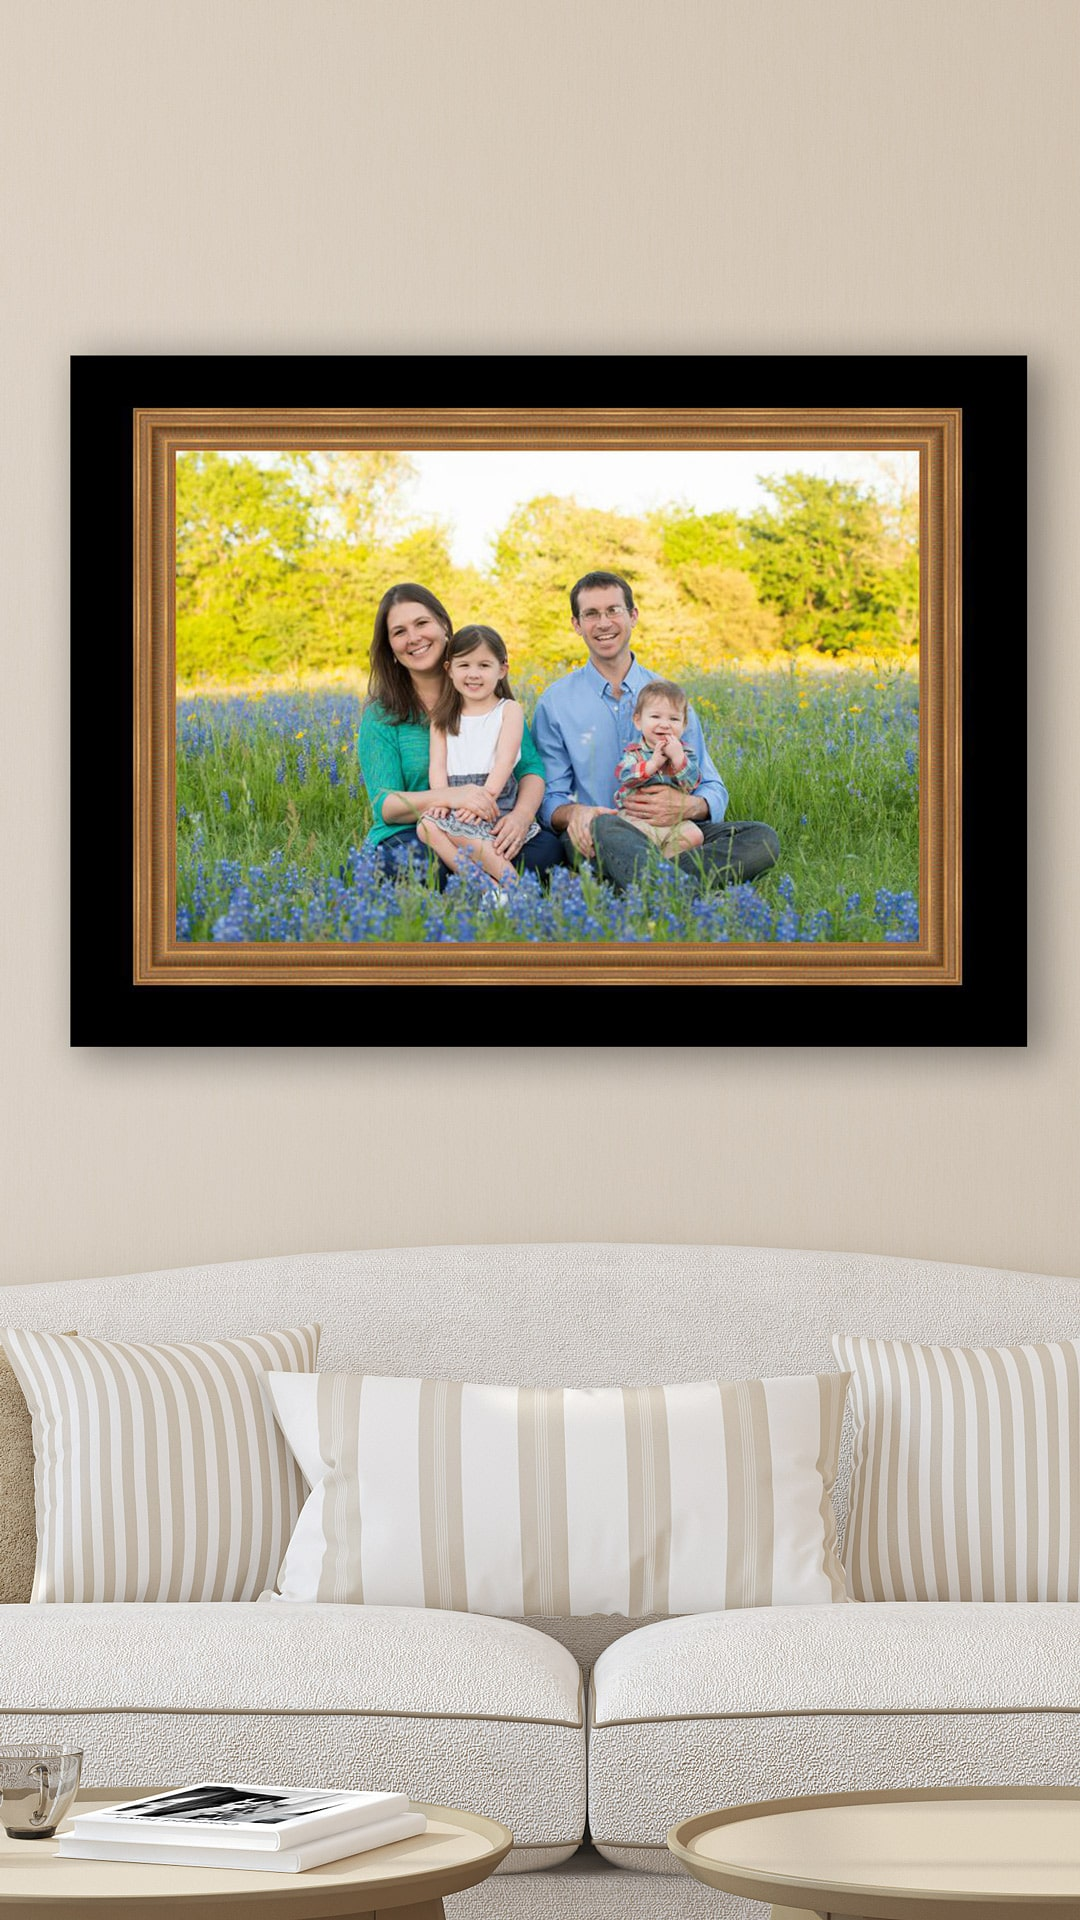 Bluebonnet family portrait made near Houston, Tx